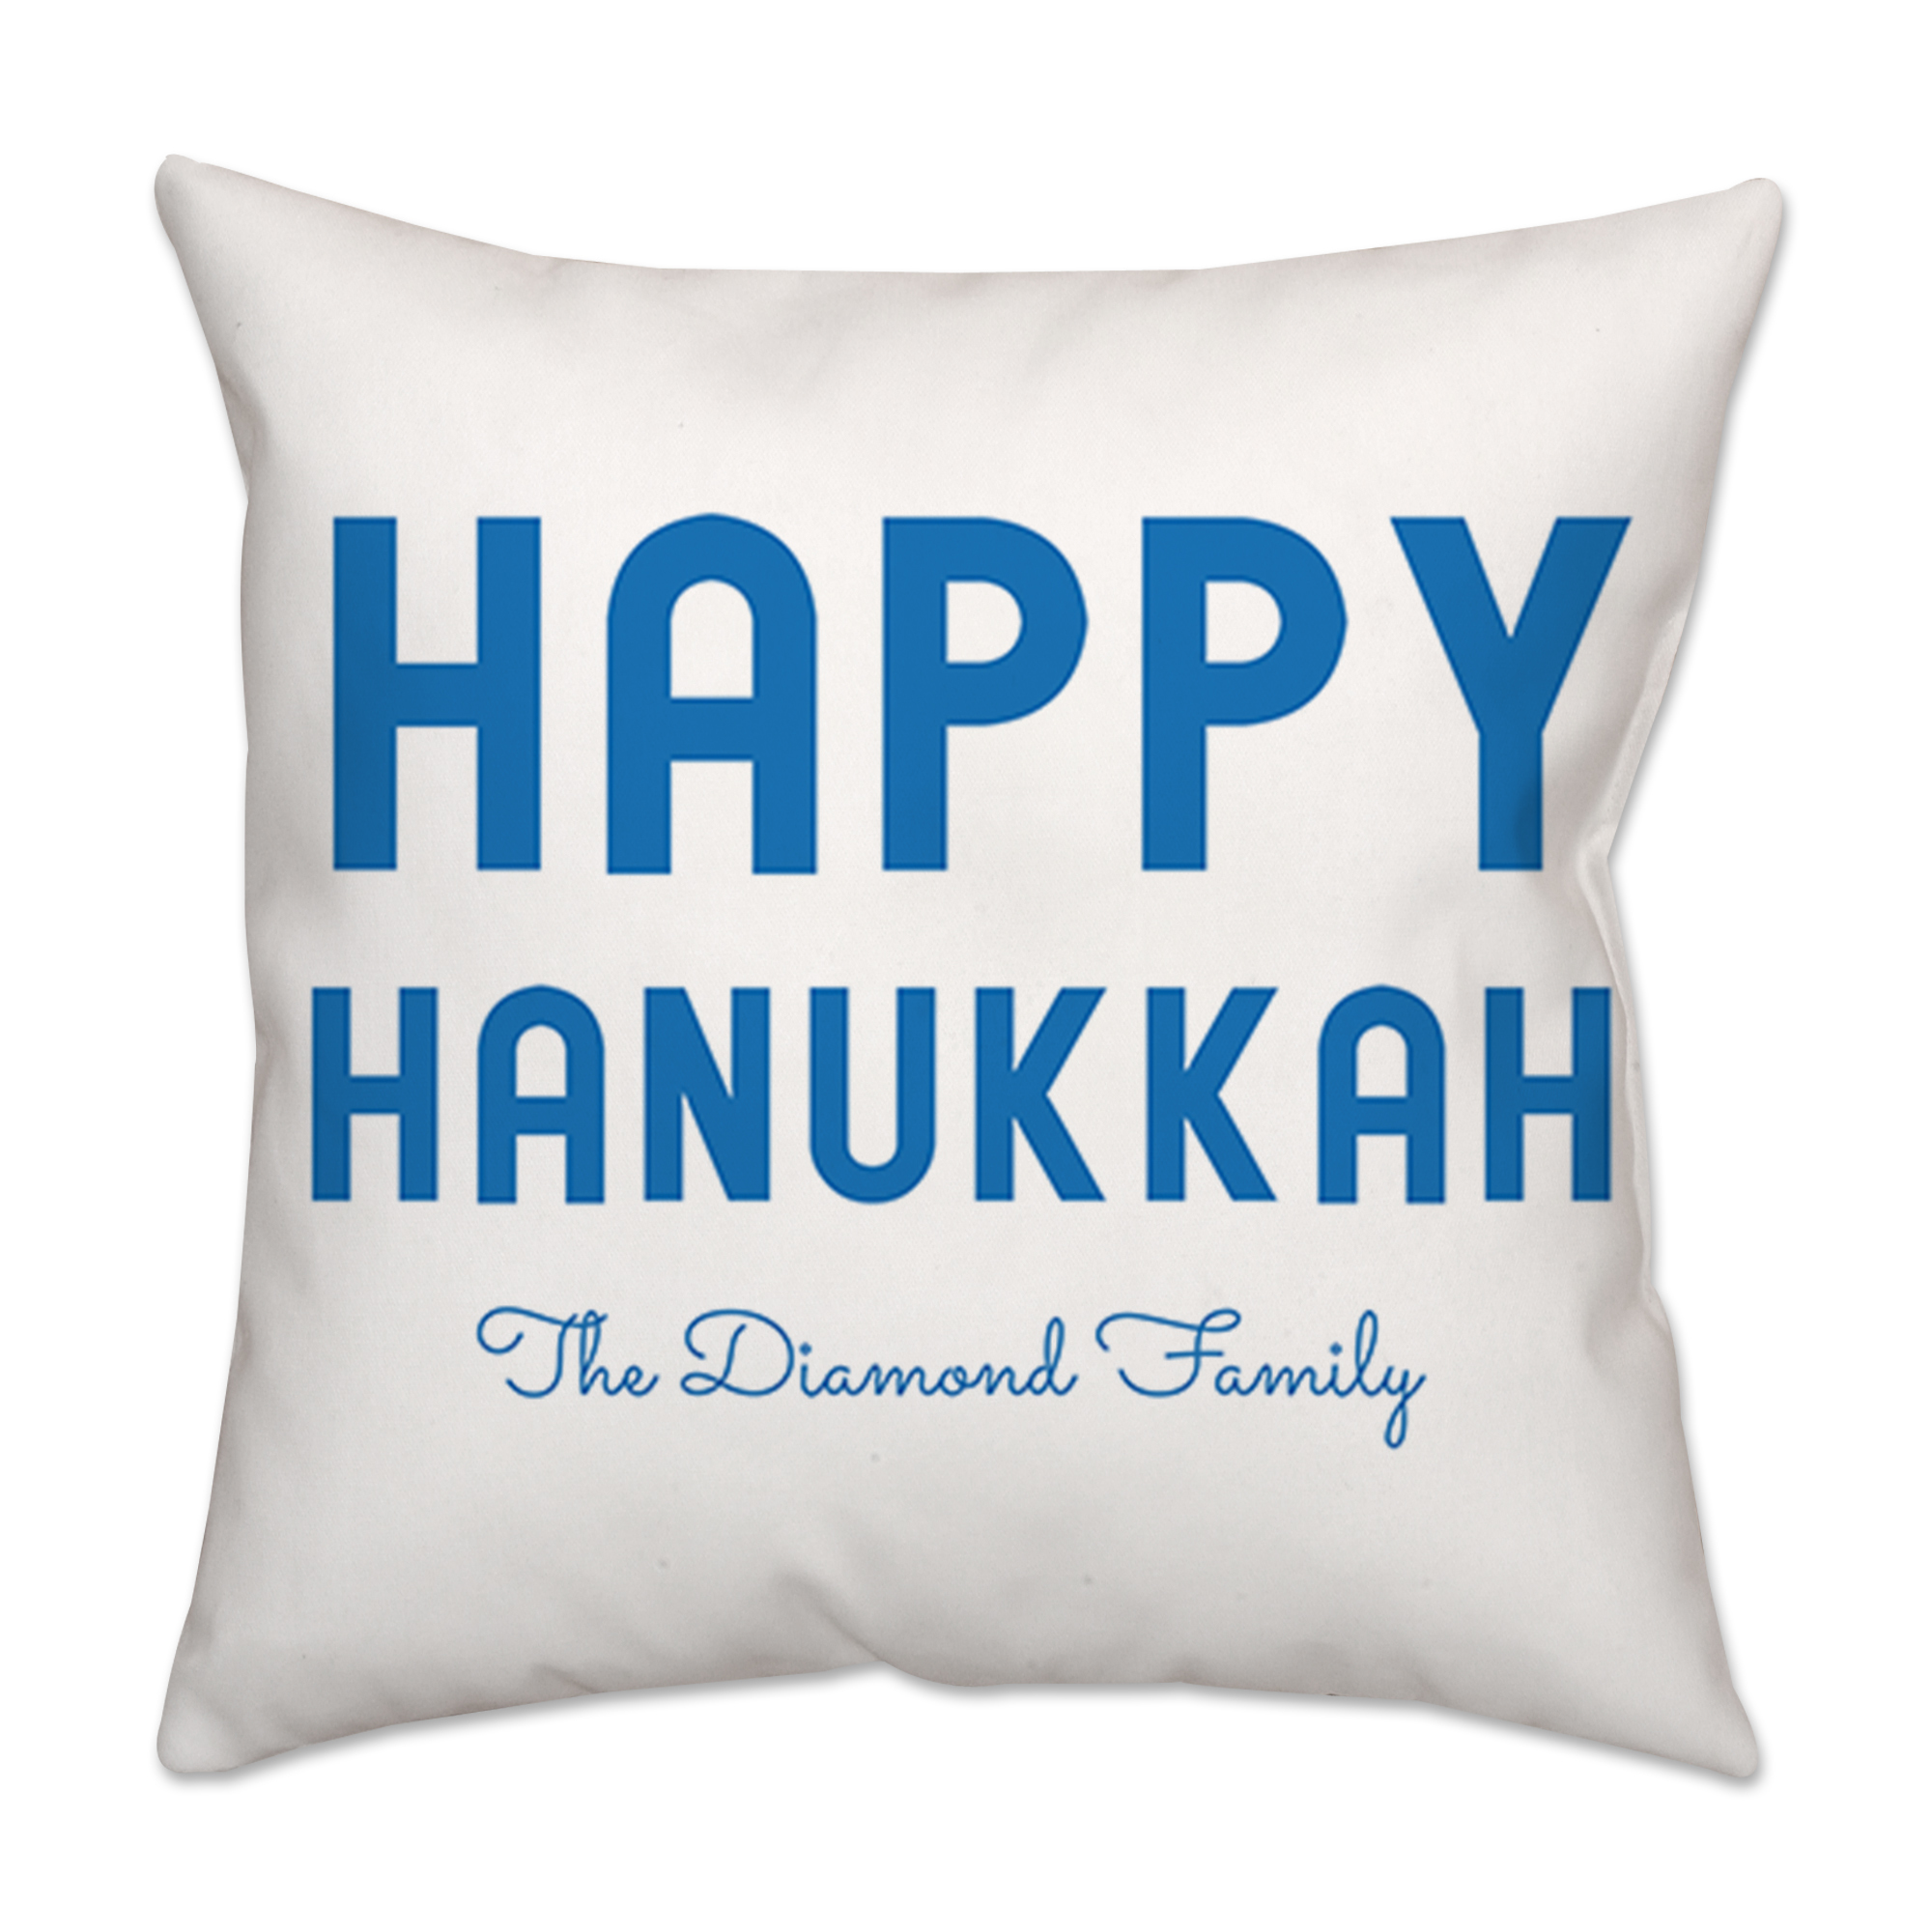 Personalized Bold Happy Hanukkah White and Blue Poplin Throw Pillow 18 X 18